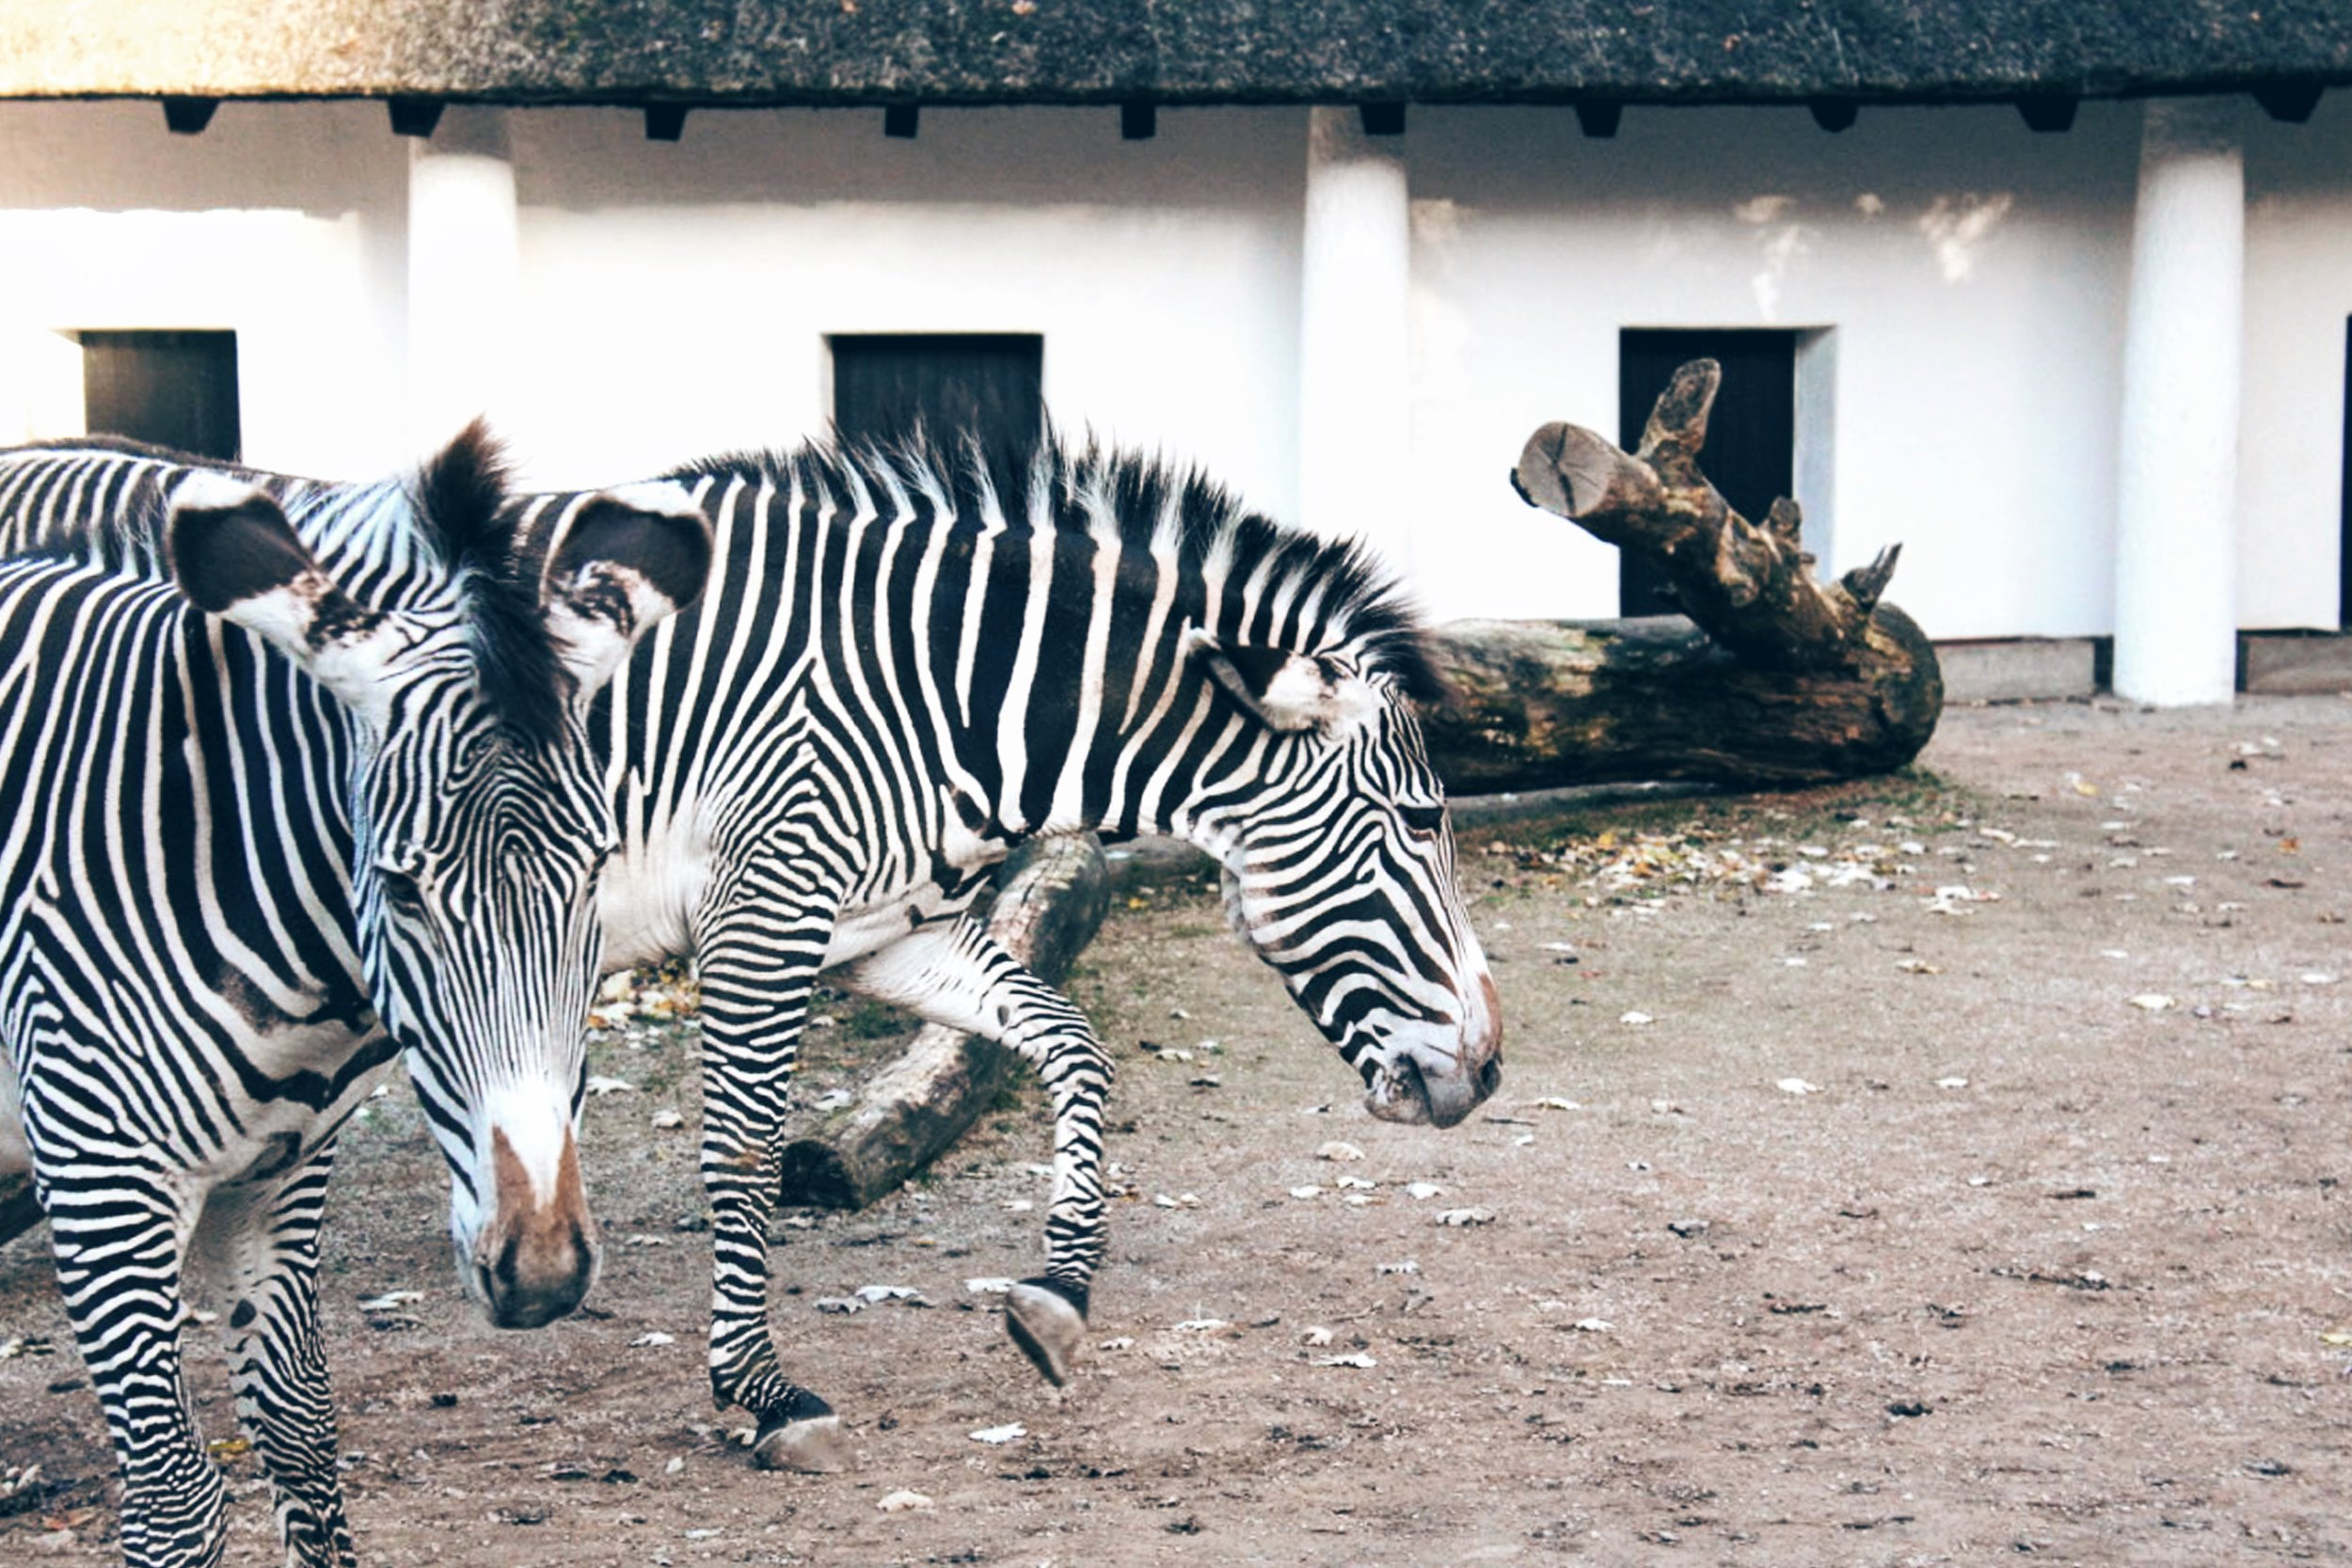 Zebras at the Berlin Zoo